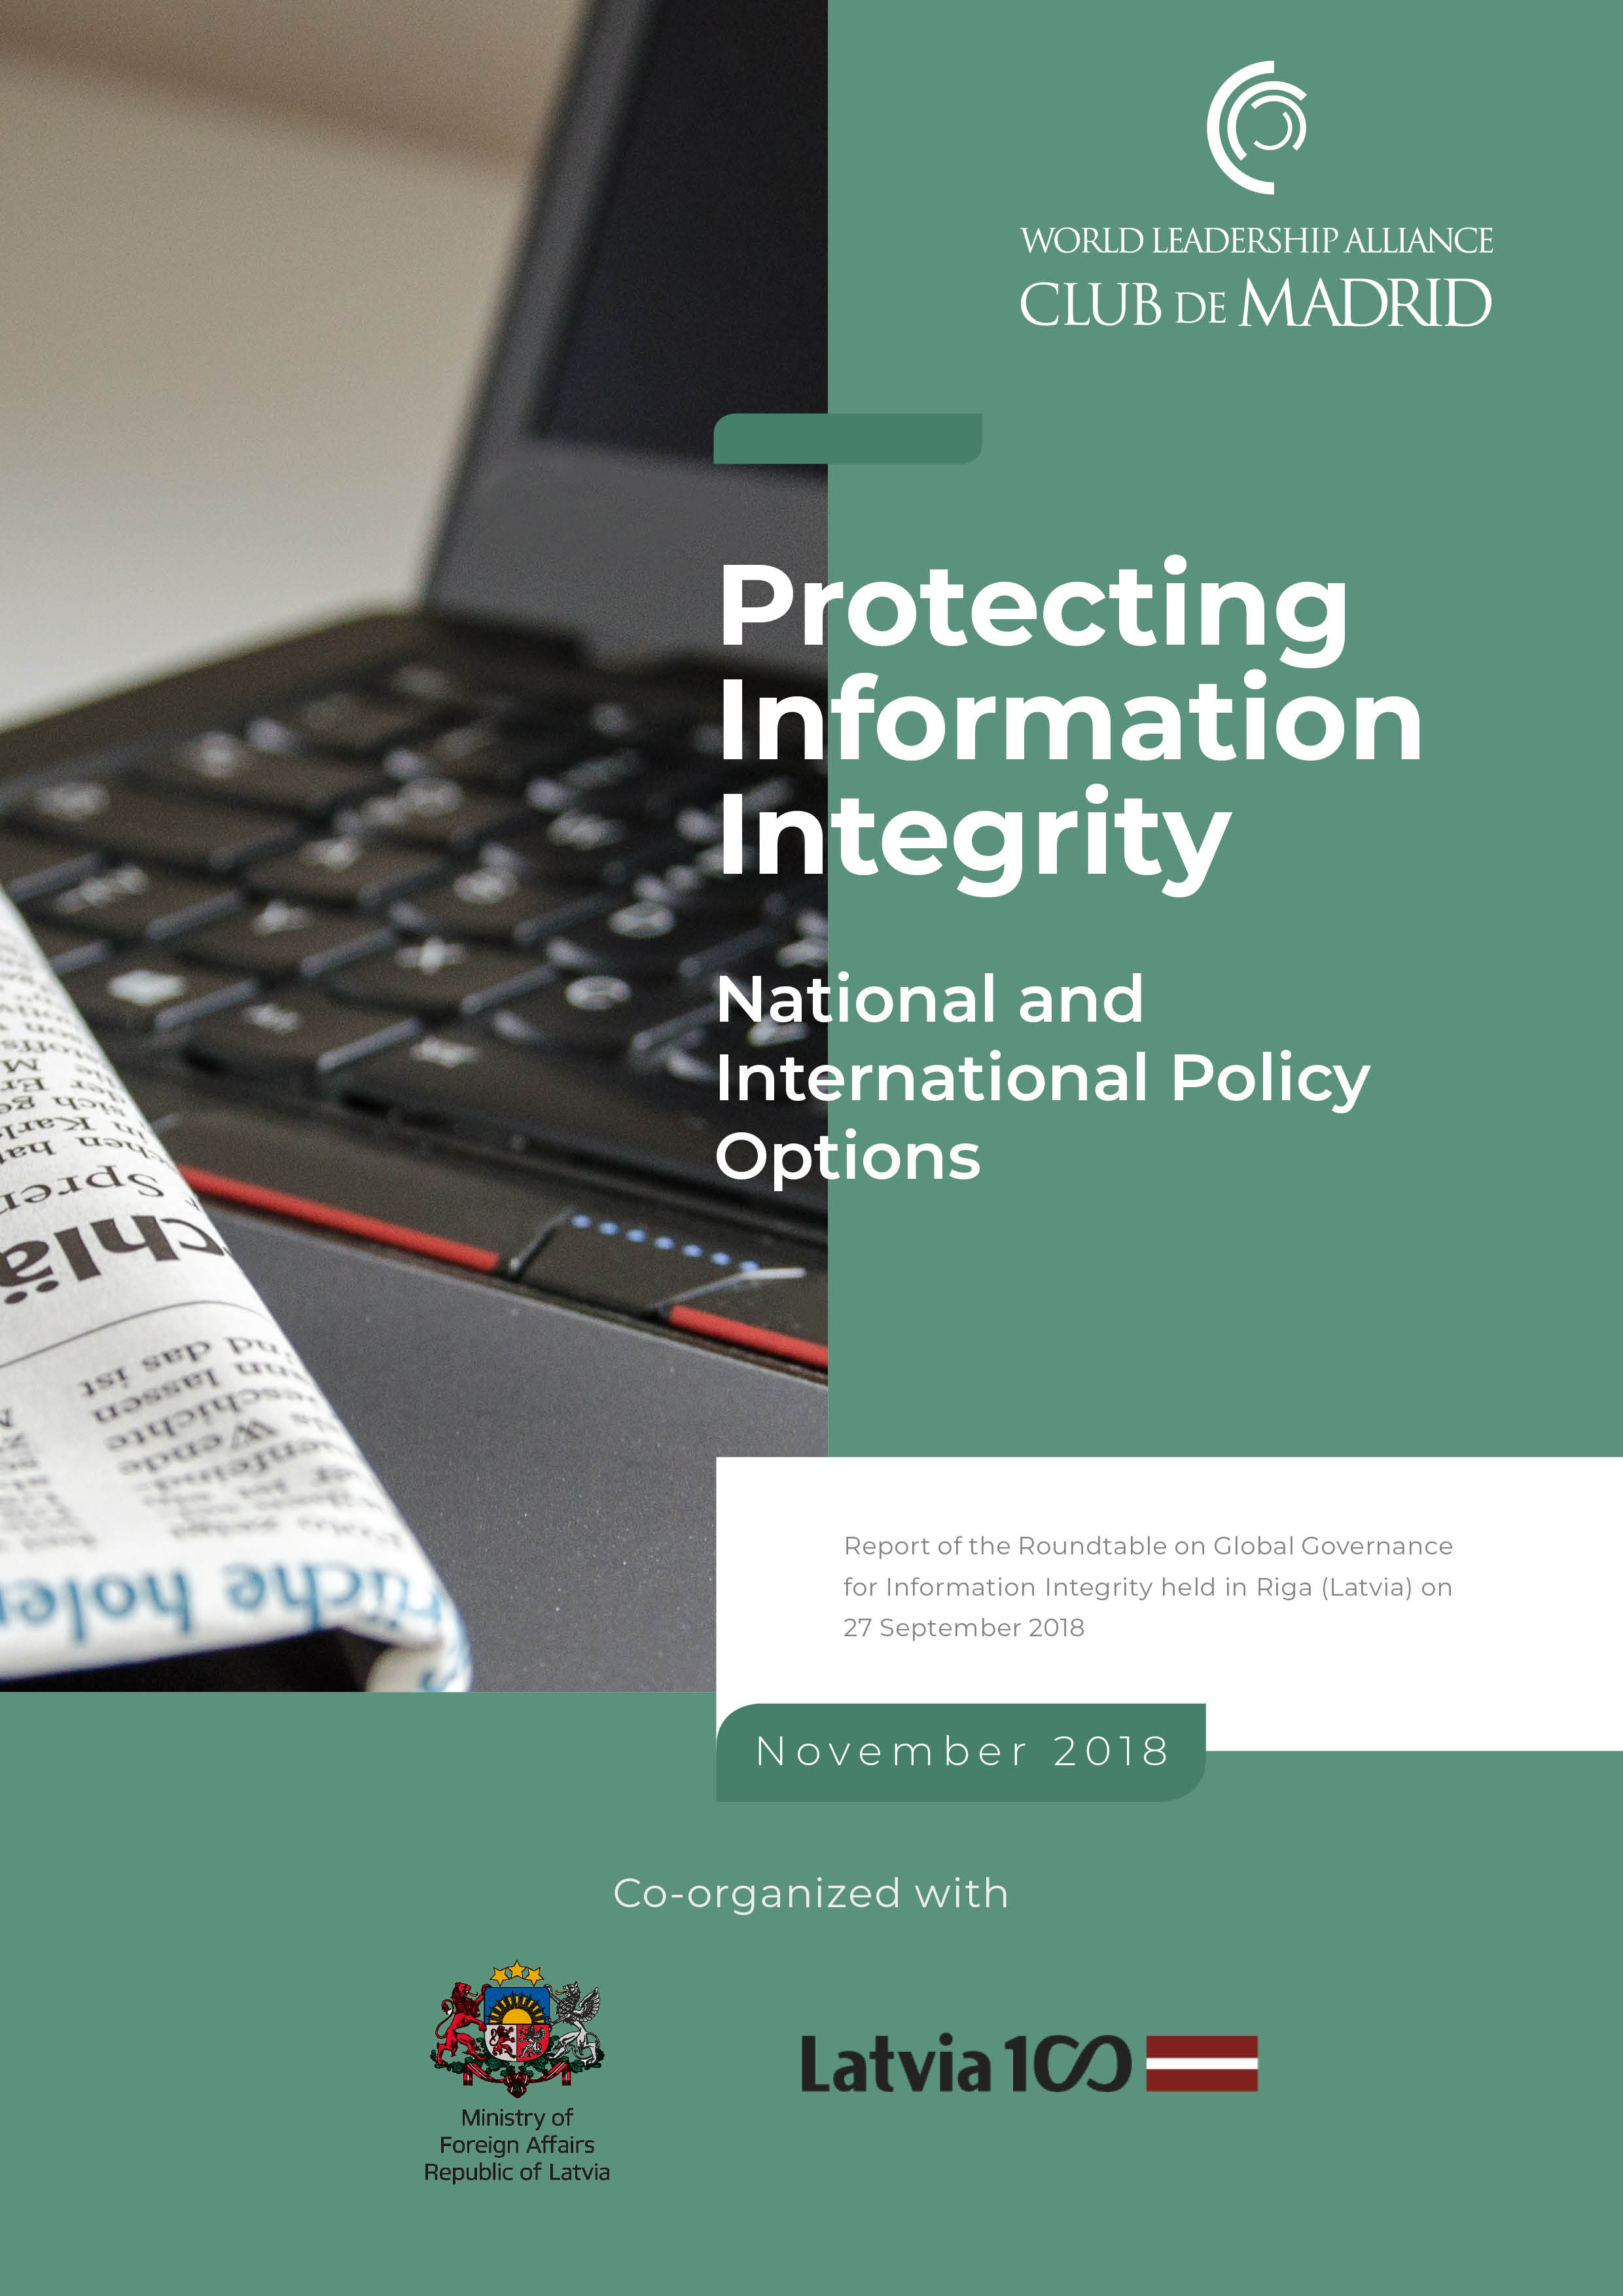 Protecting Information Integrity: National and International Policy Options